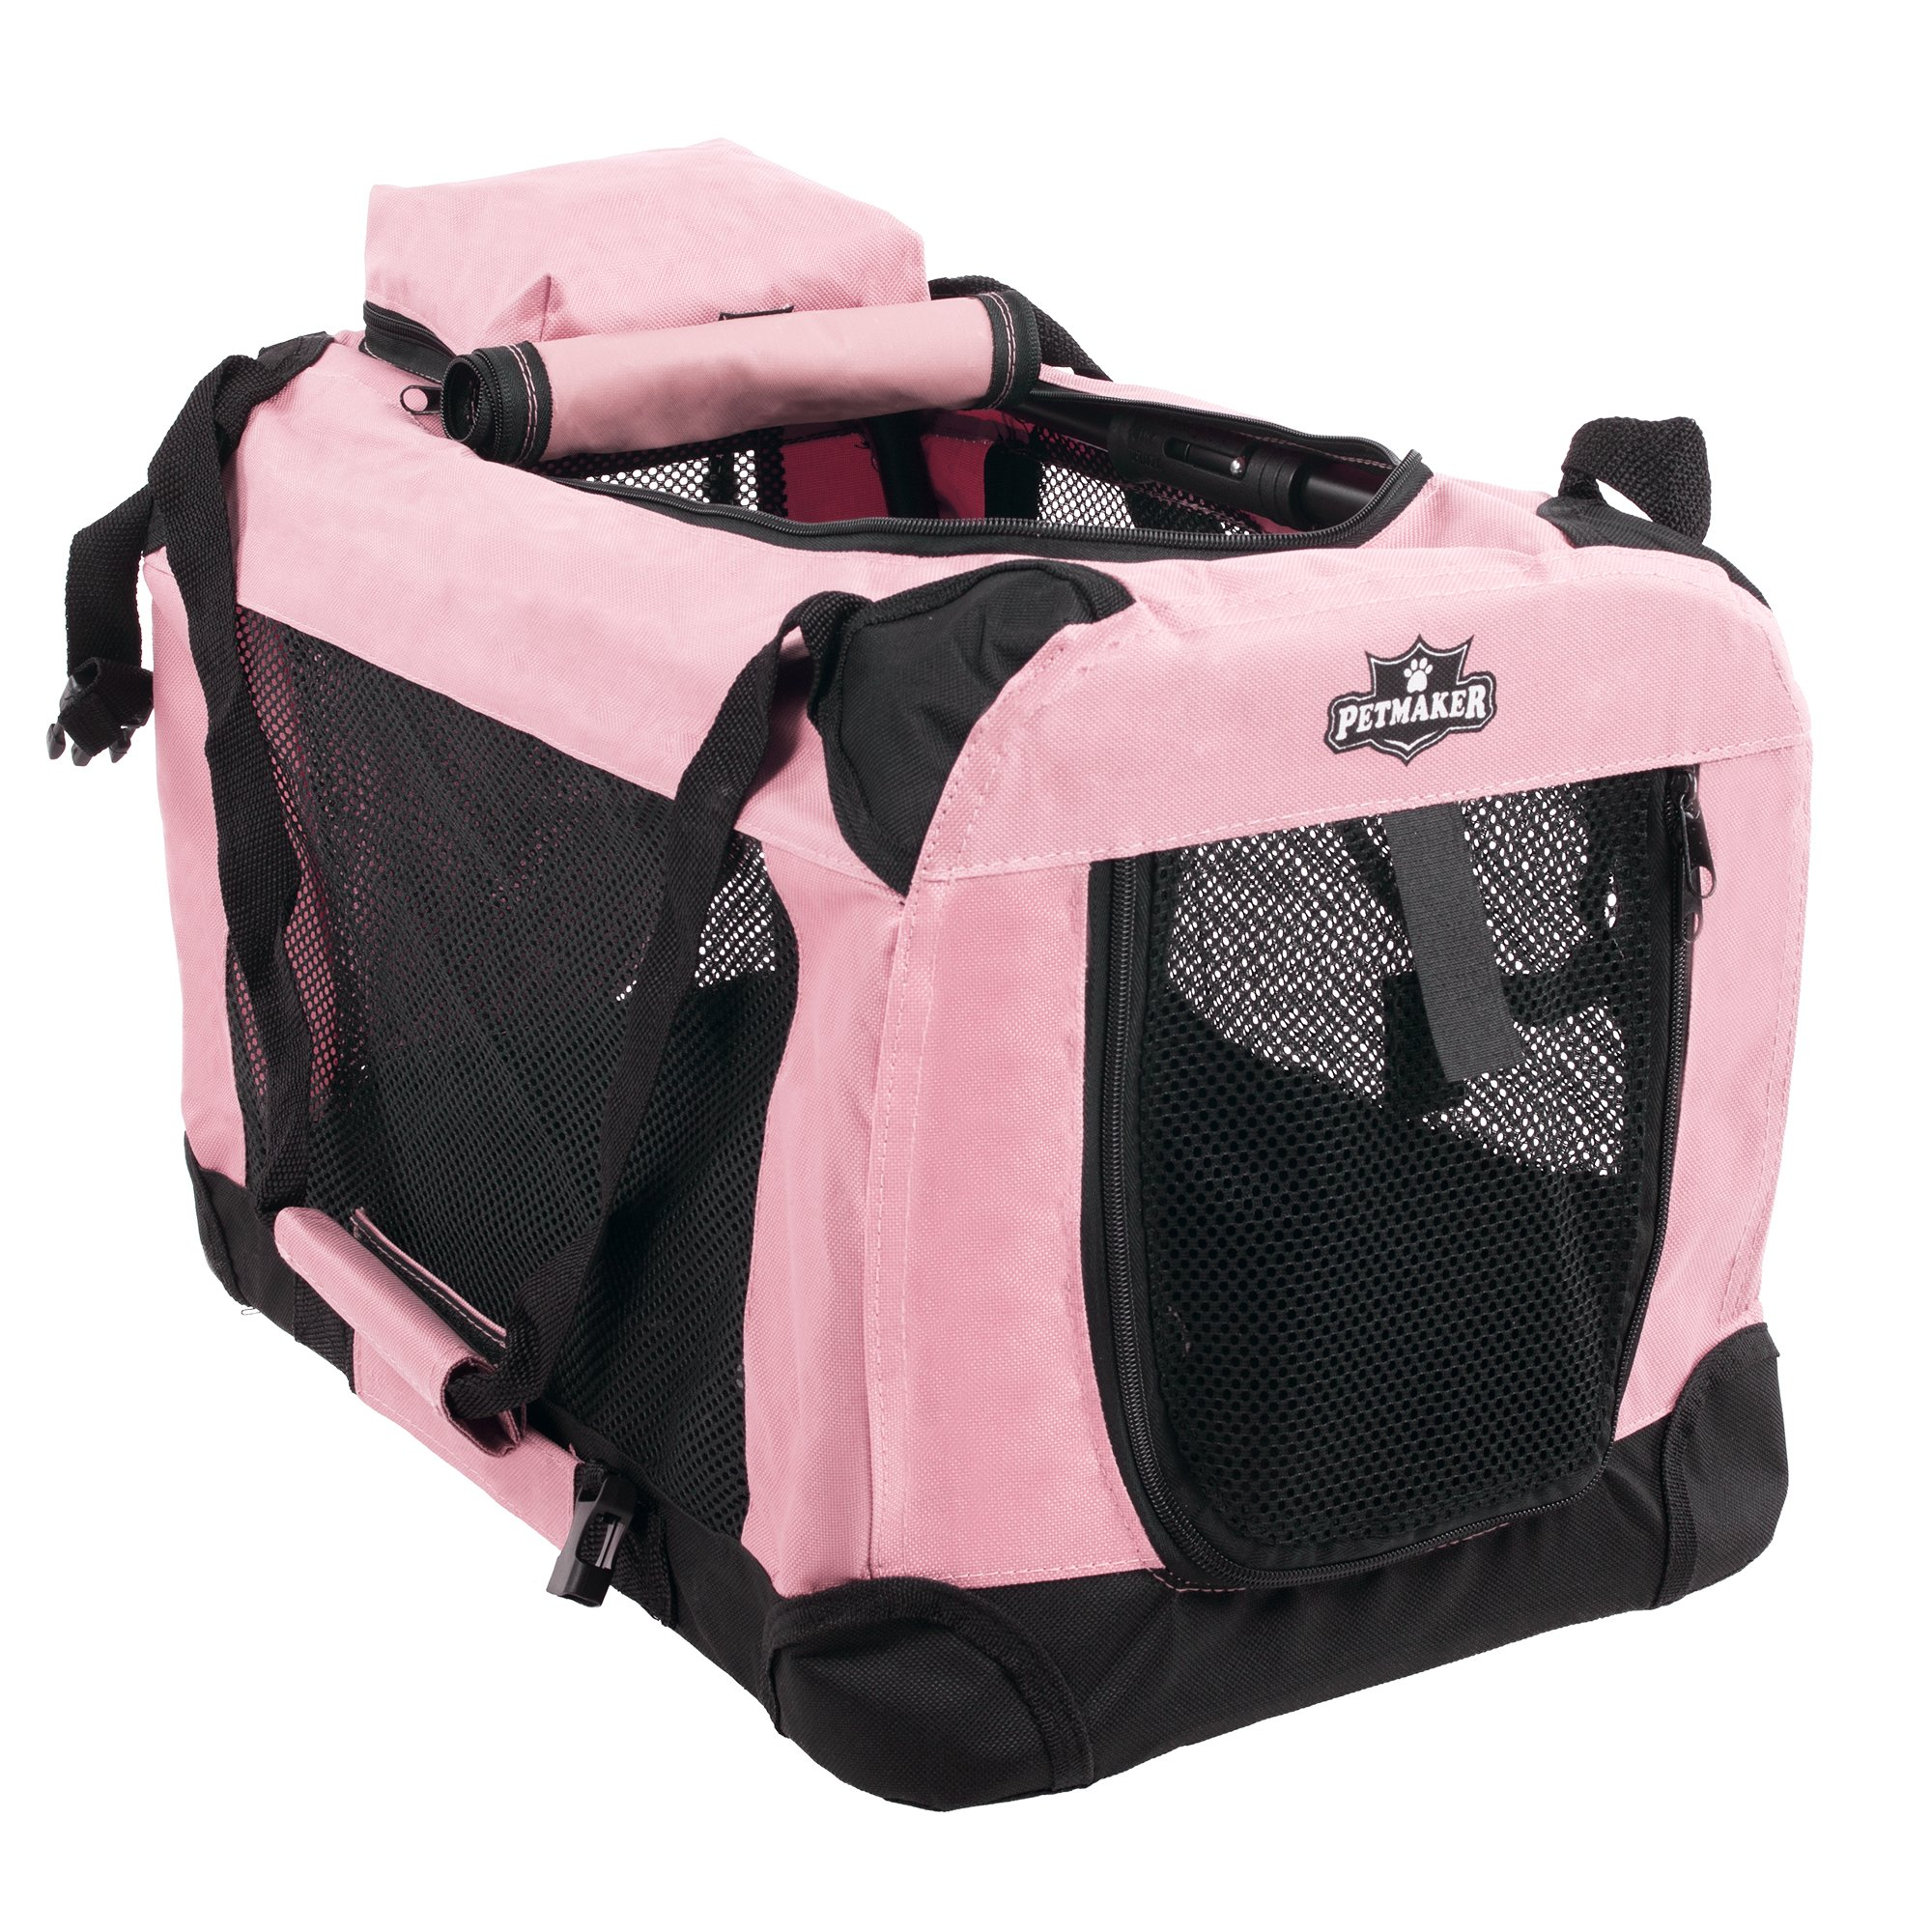 PETMAKER Portable Soft Sided Pet Crate, 20'' x 12'', Pink by PETMAKER